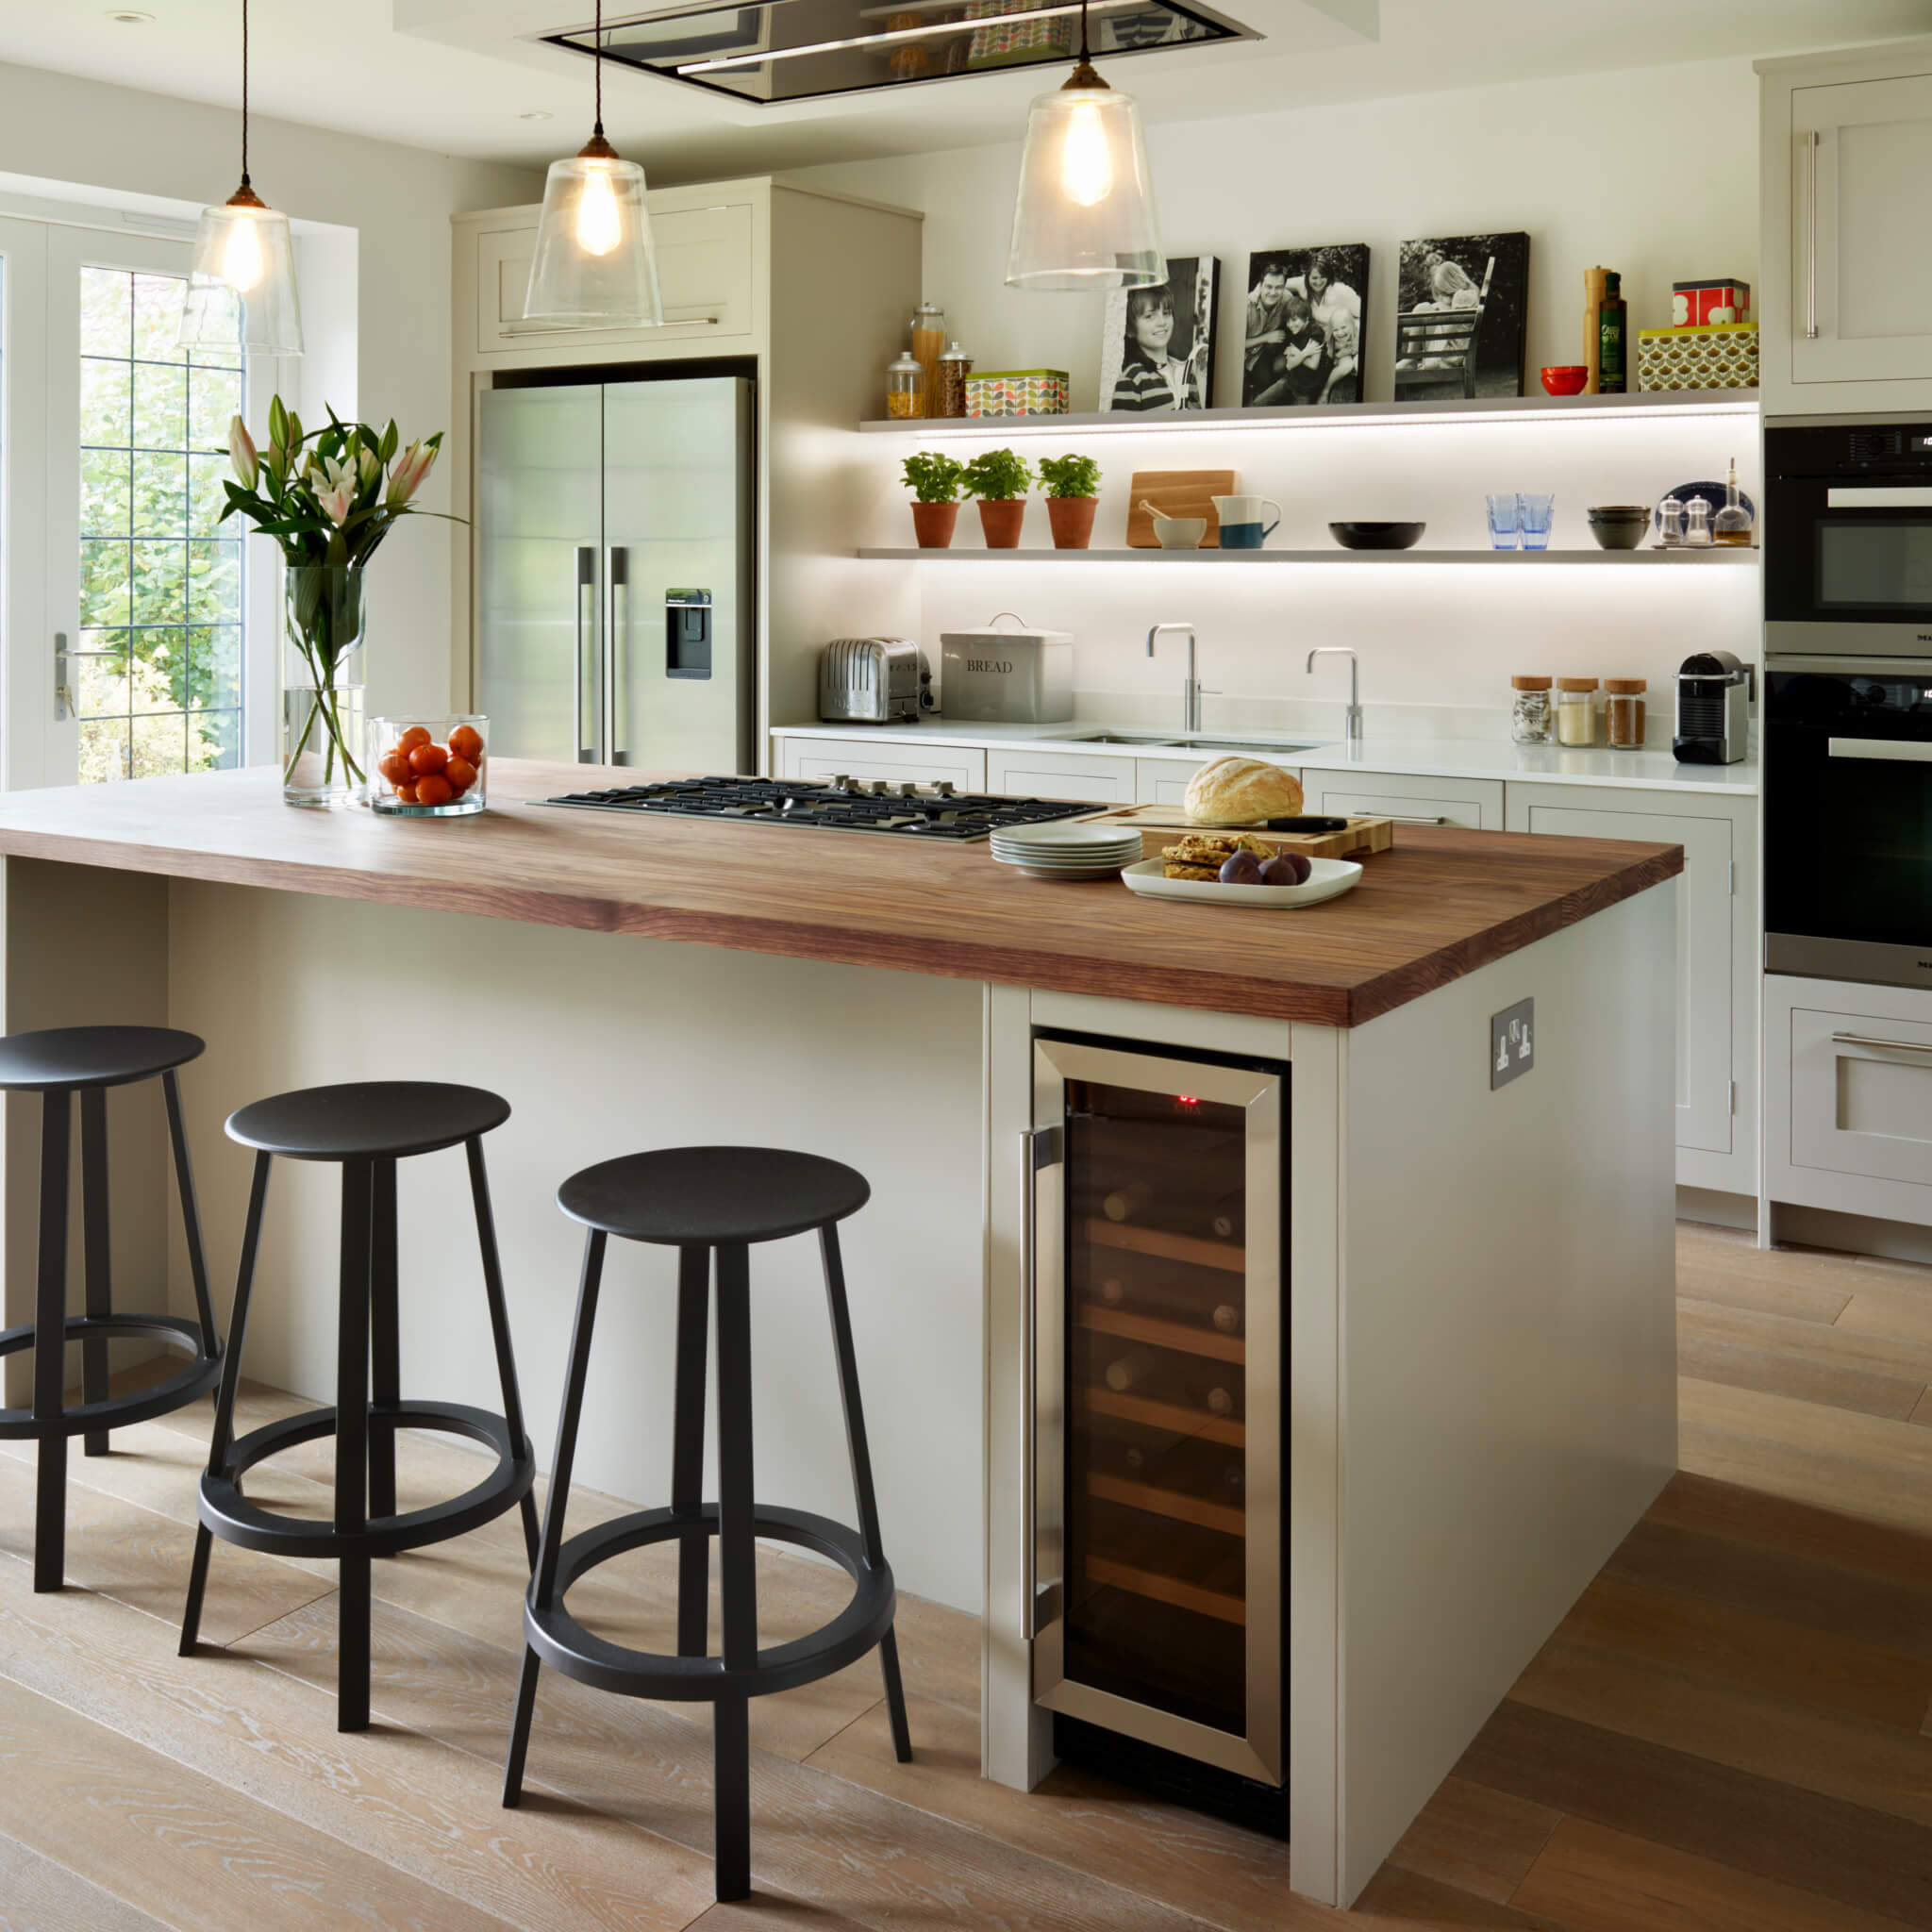 Semi-Open Plan Shaker Kitchen With Island Seating